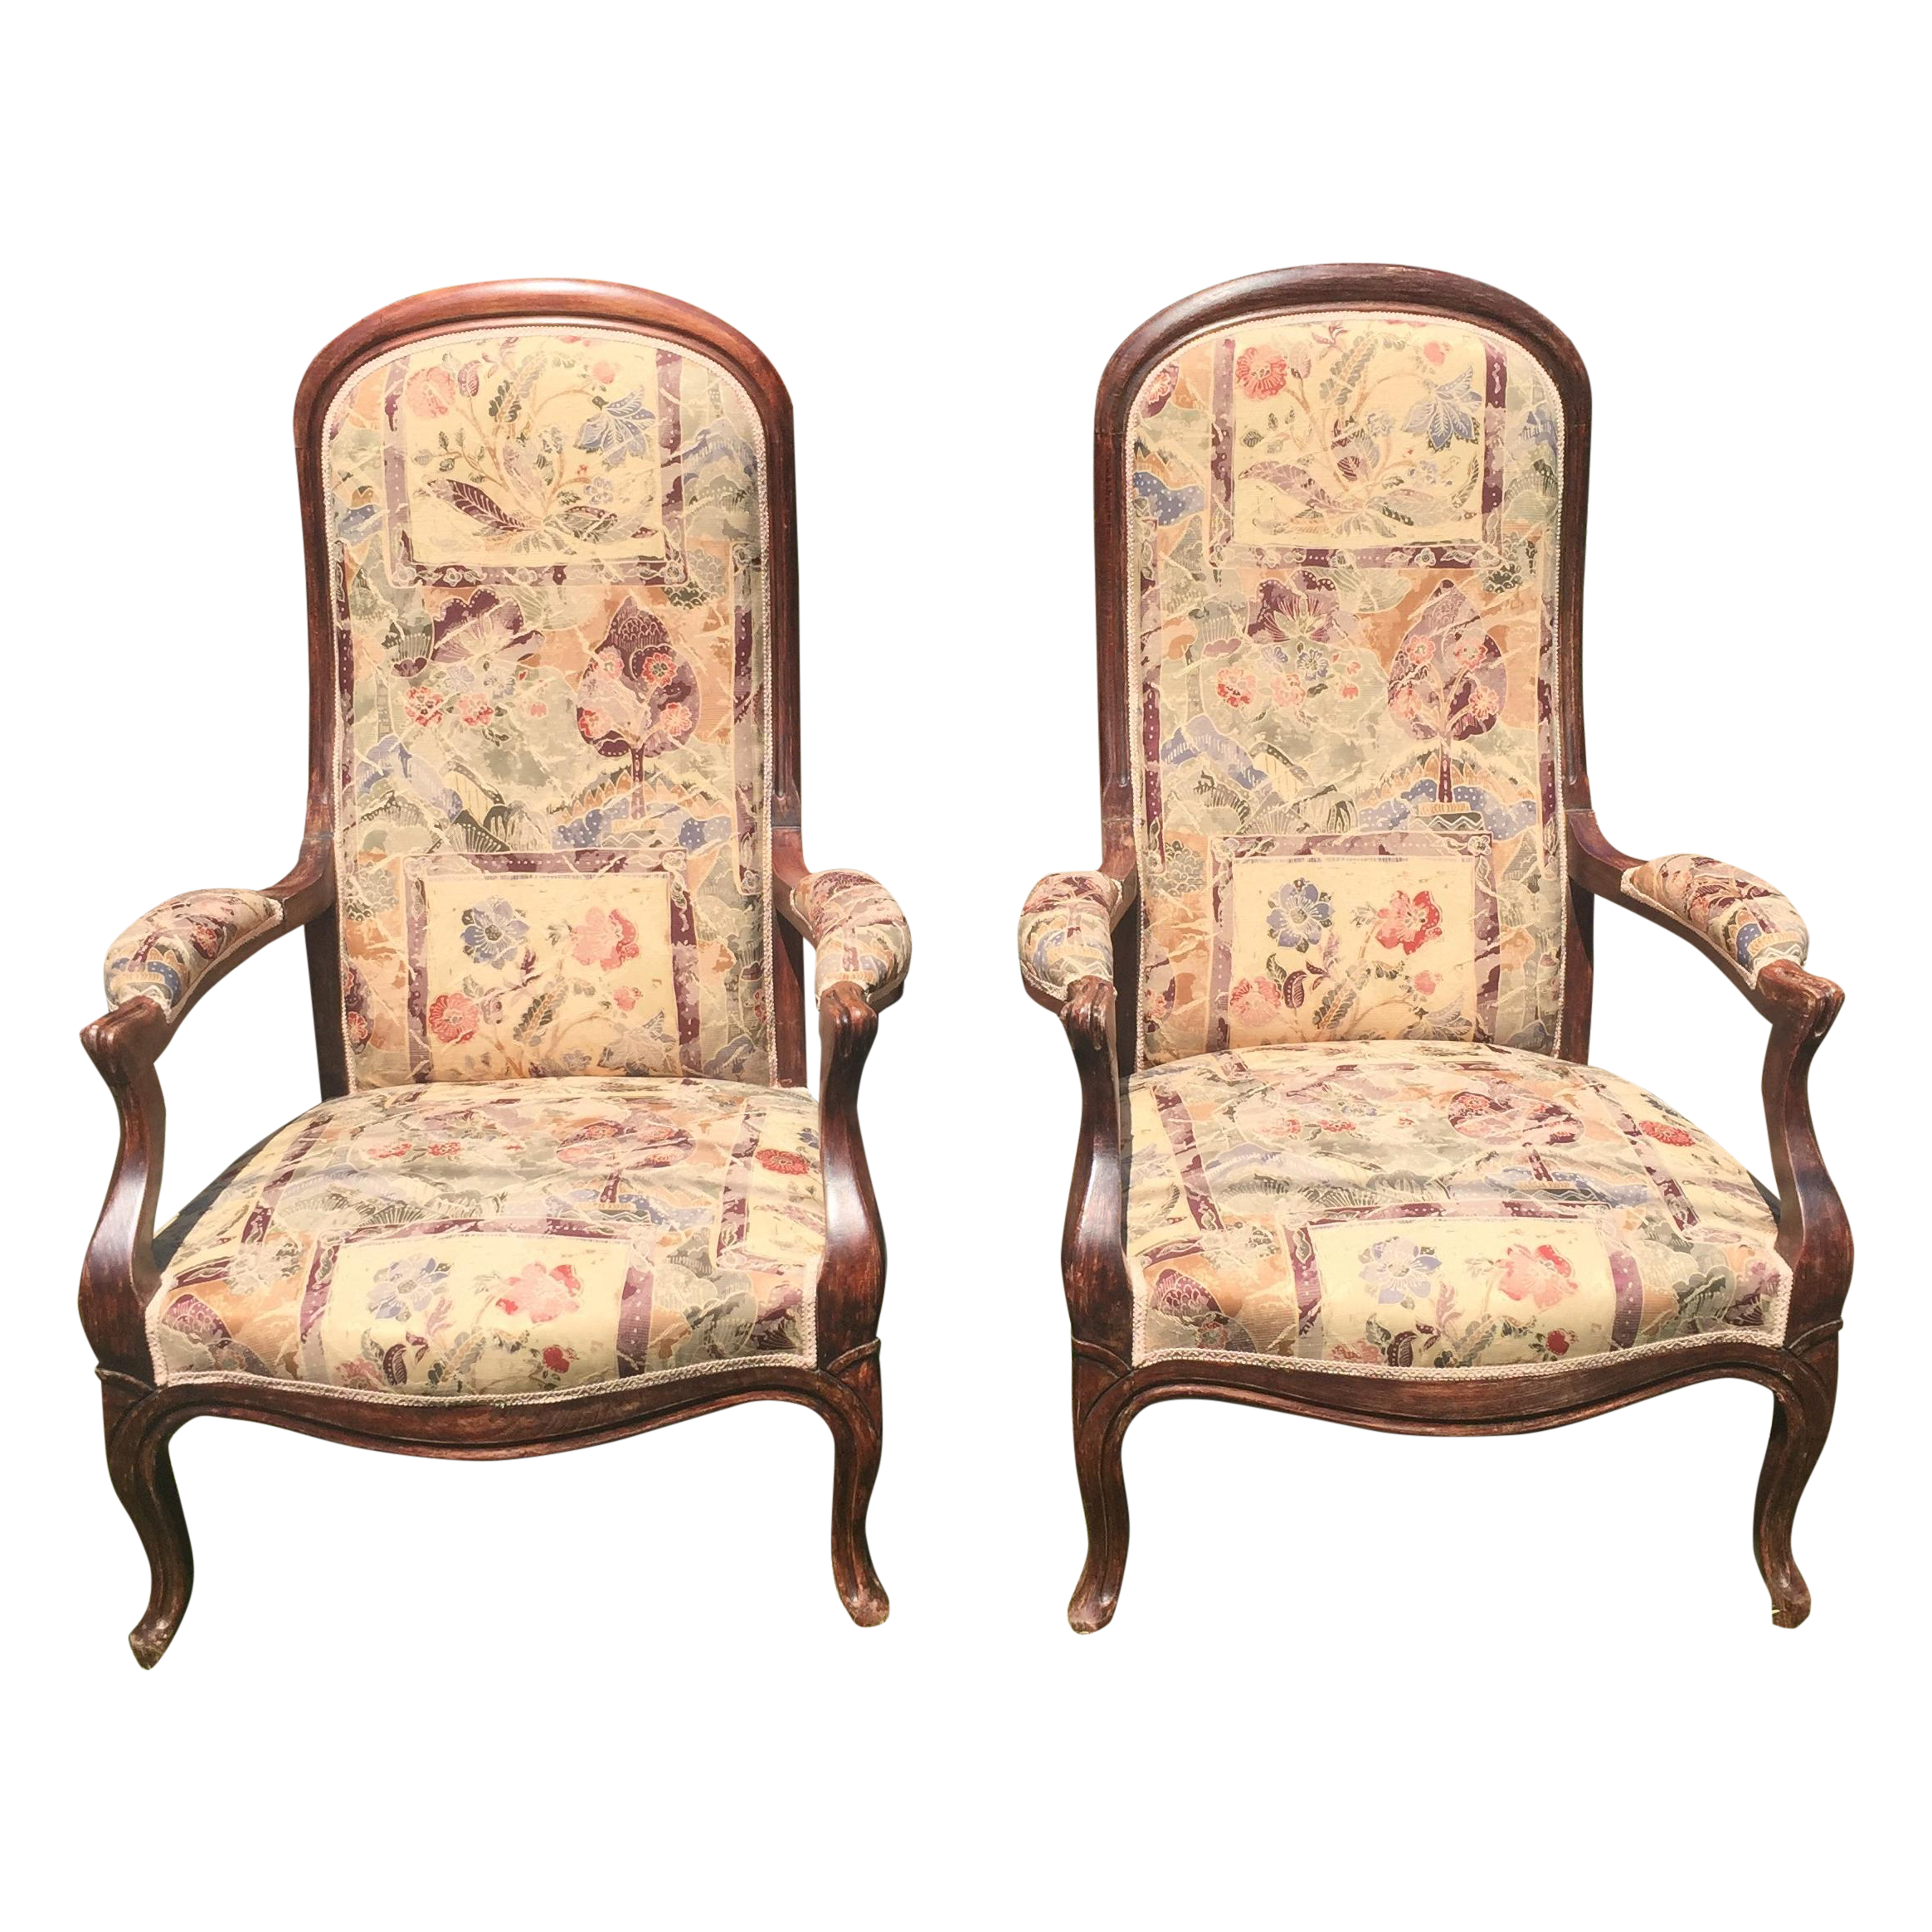 Antique victorian parlor chairs - Image Of Vintage Victorian High Back Parlor Chairs A Pair